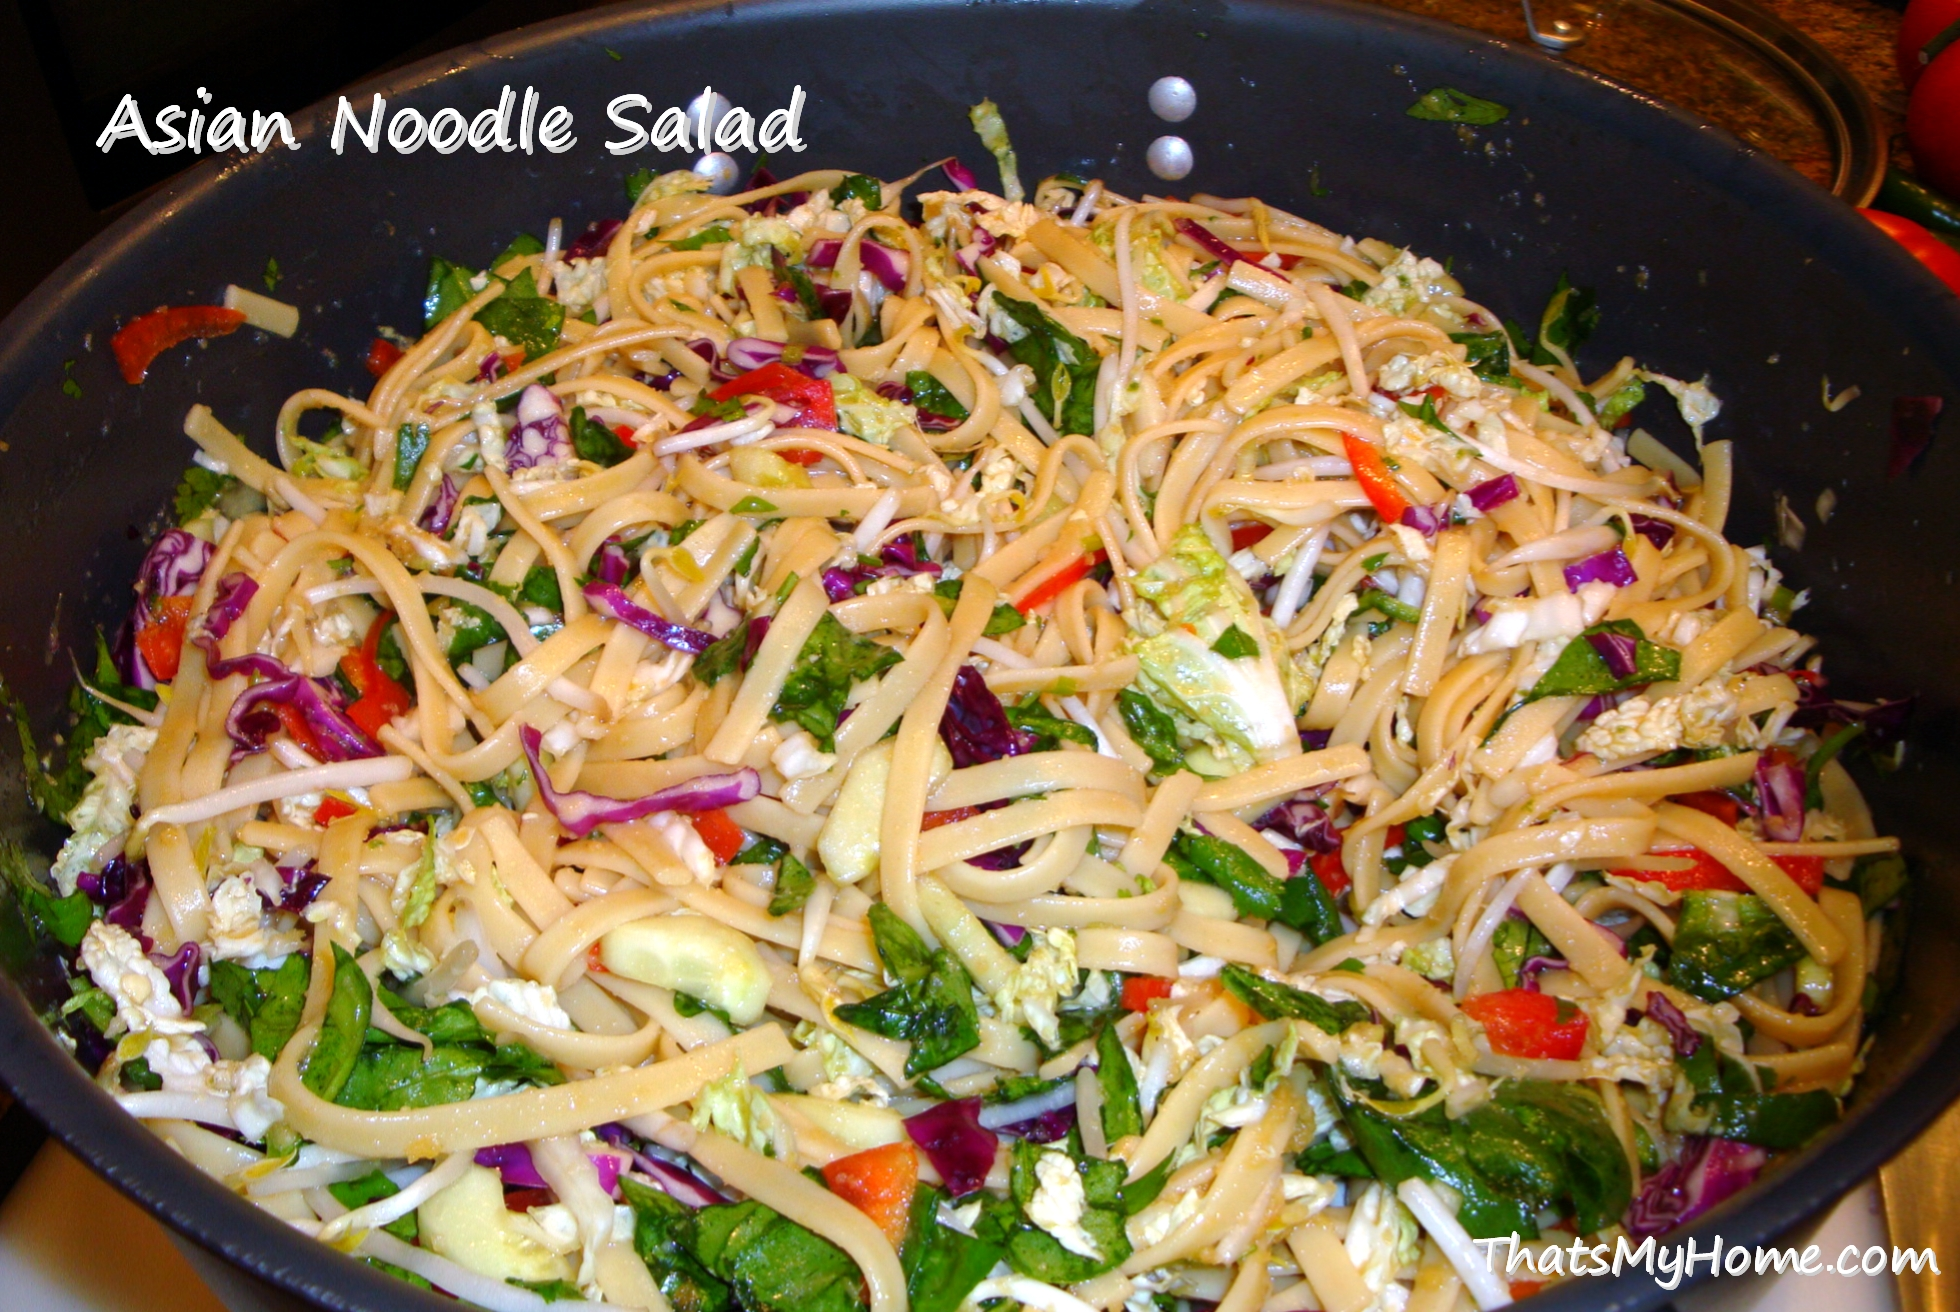 Asian Noodle Salad - Recipes, Food and Cooking